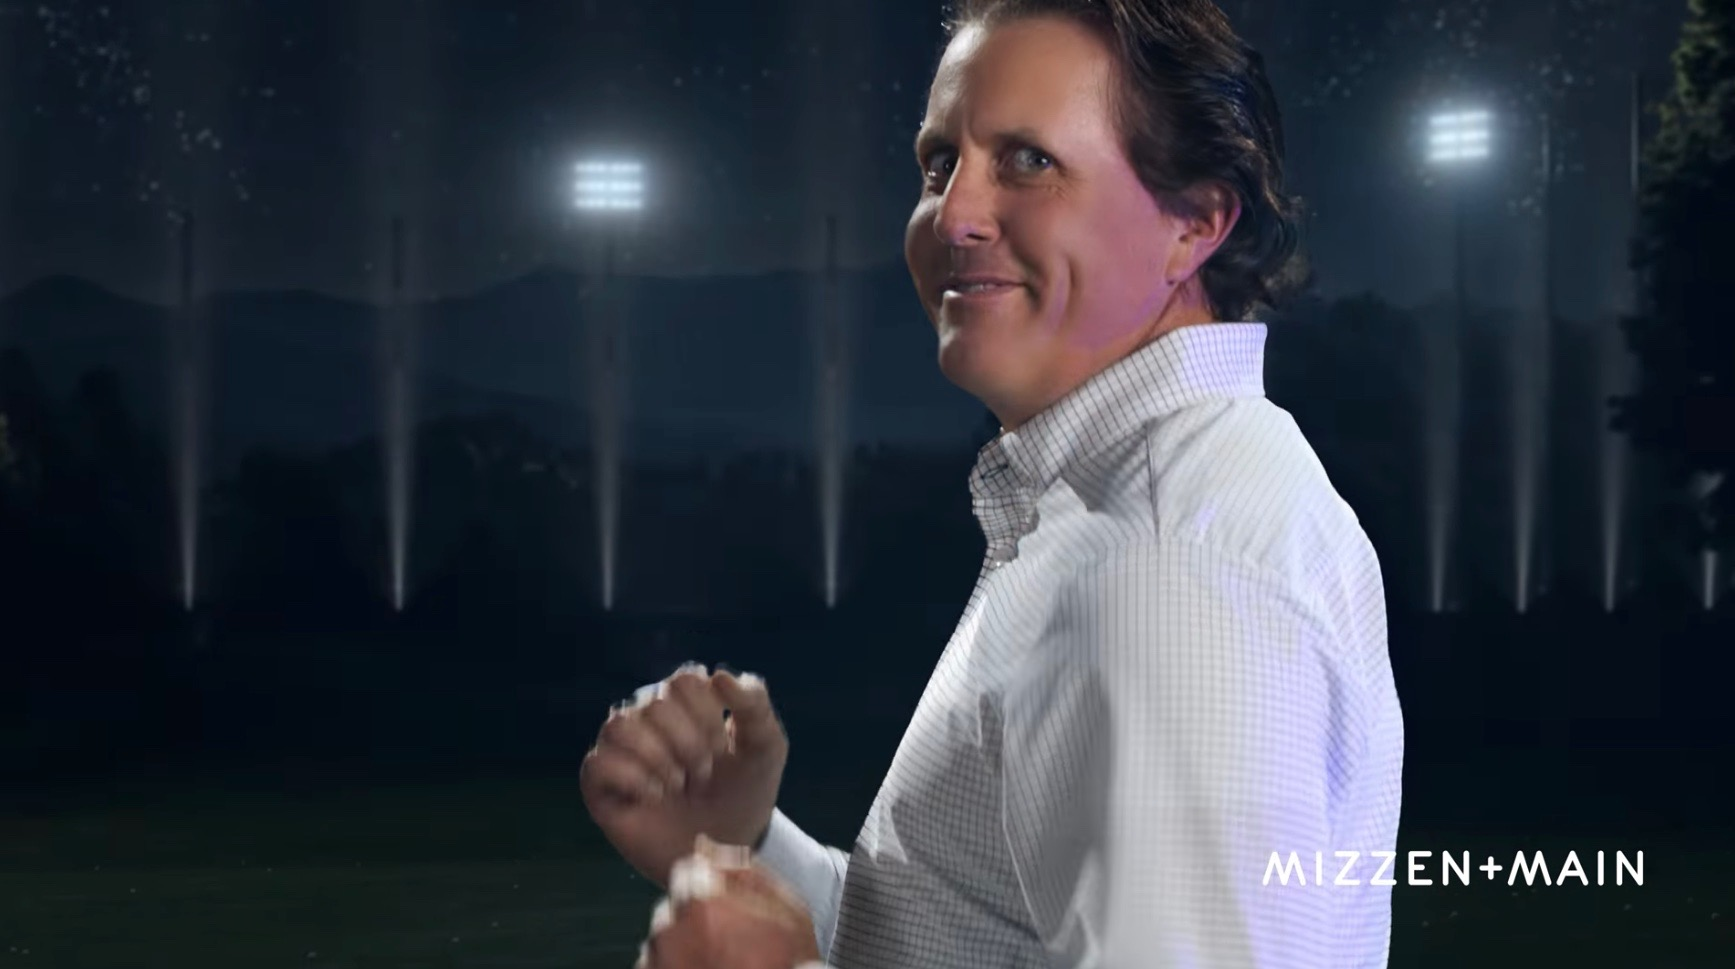 Phil Mickelson breaks down dance moves